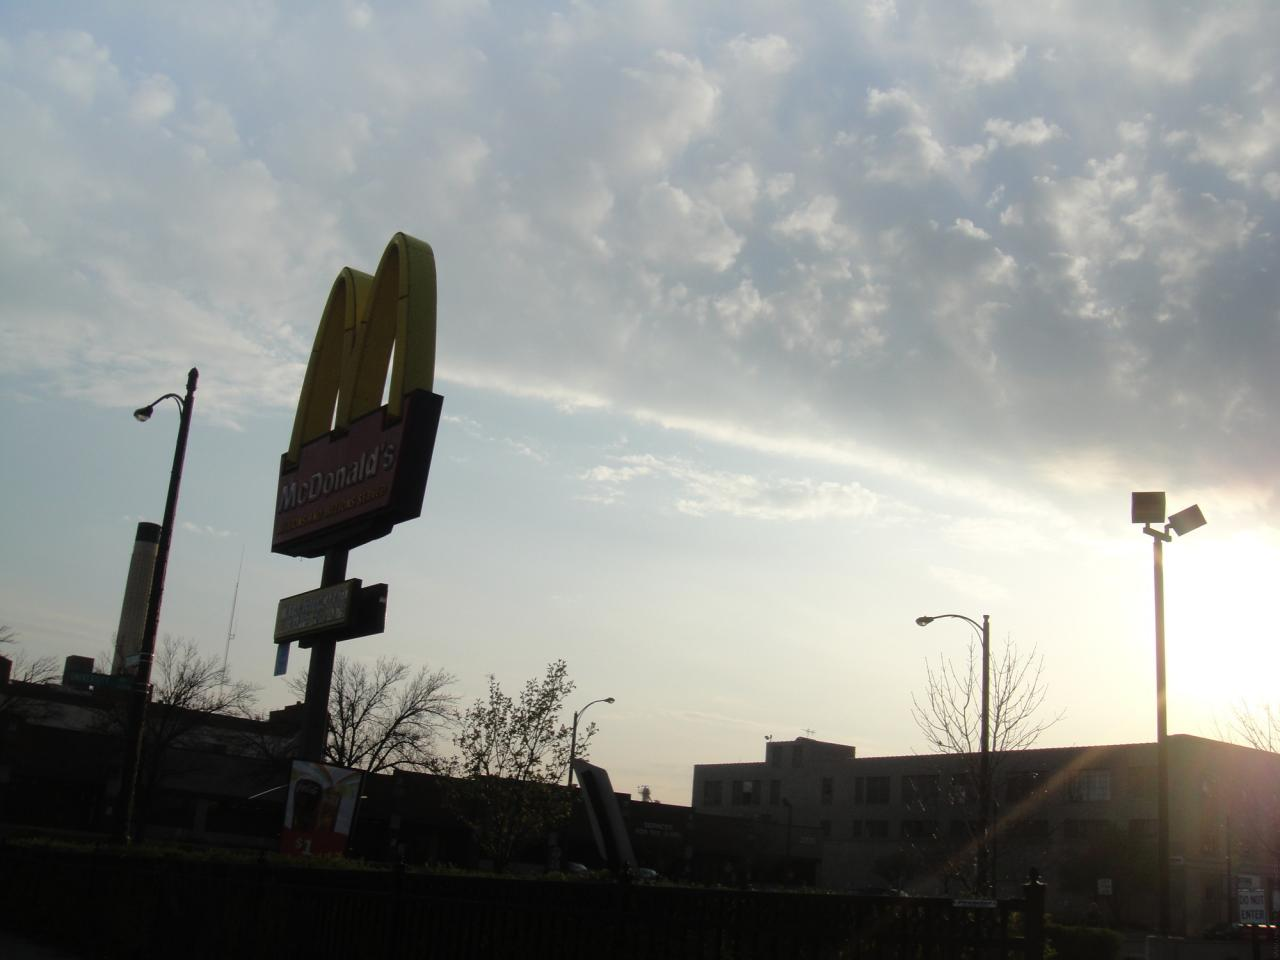 McDonalds in the Sky